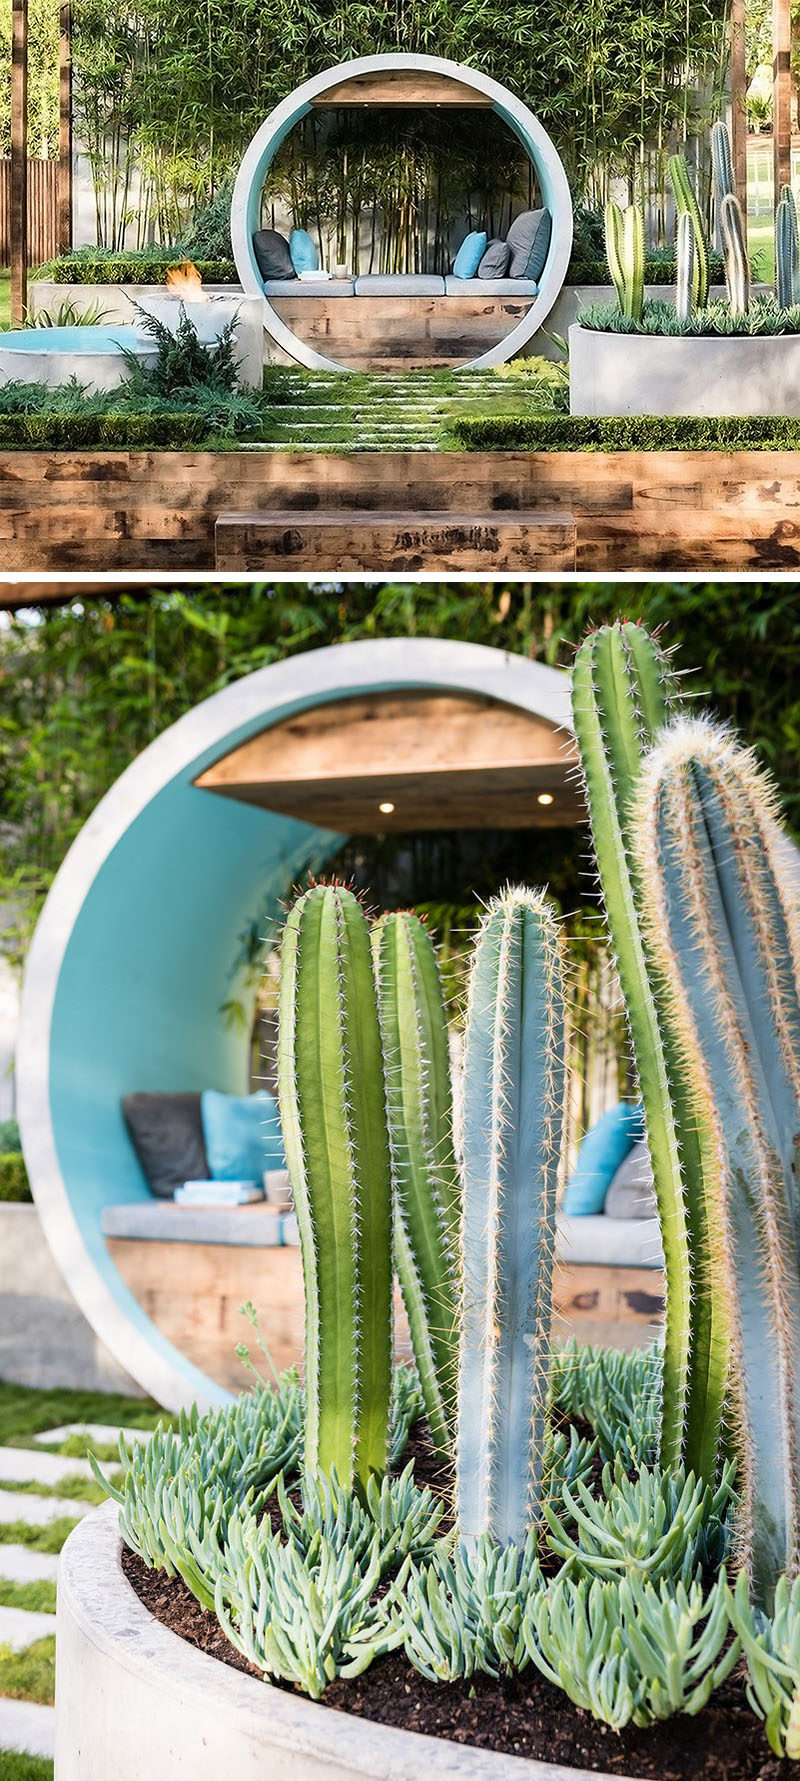 10 Inspirational Ideas For Including Custom Concrete Planters In Your Yard // Concrete pipes were used to created designated planters in this garden show entry.